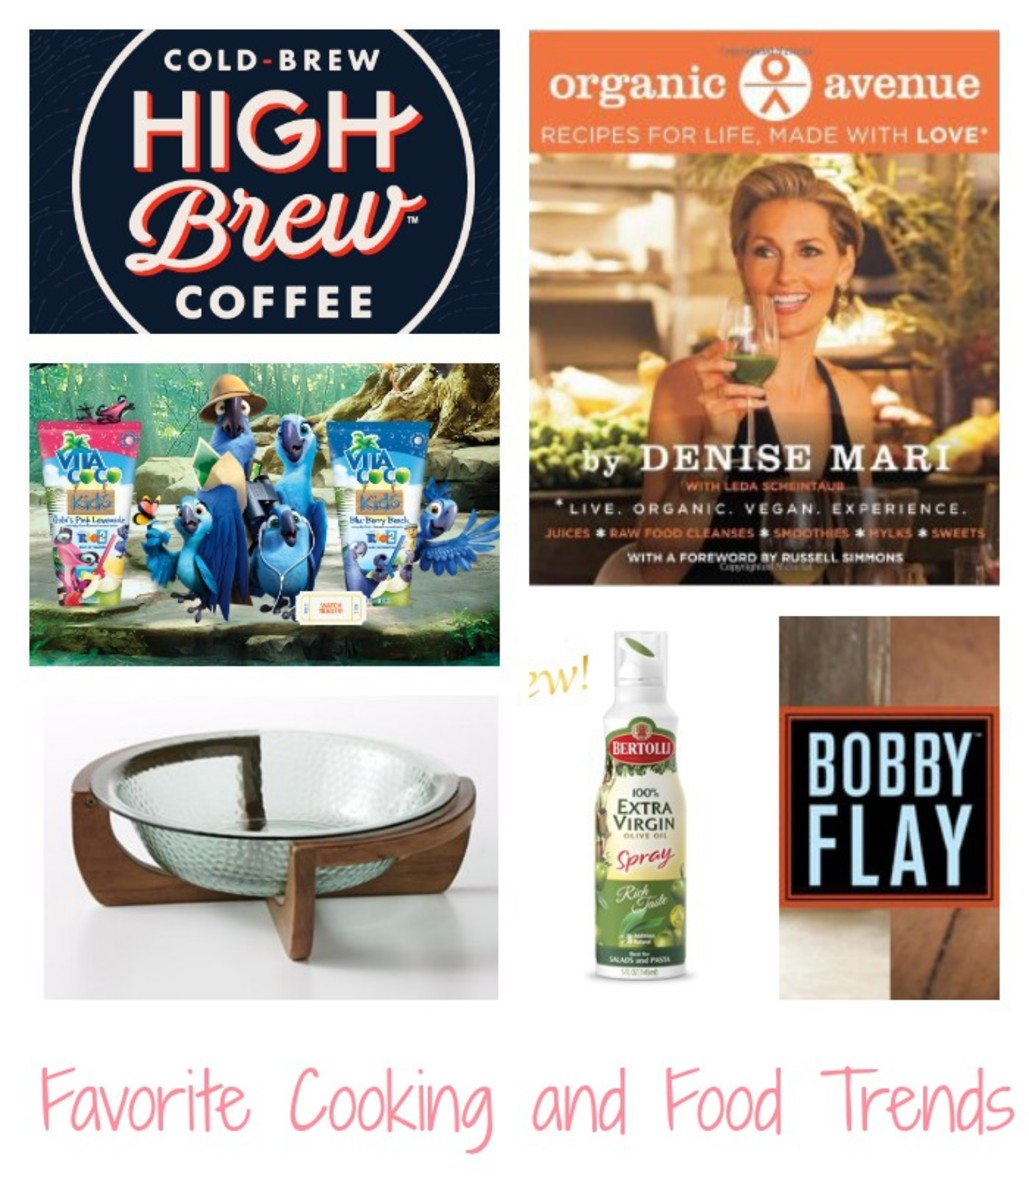 Favorite Cooking and Food Trends